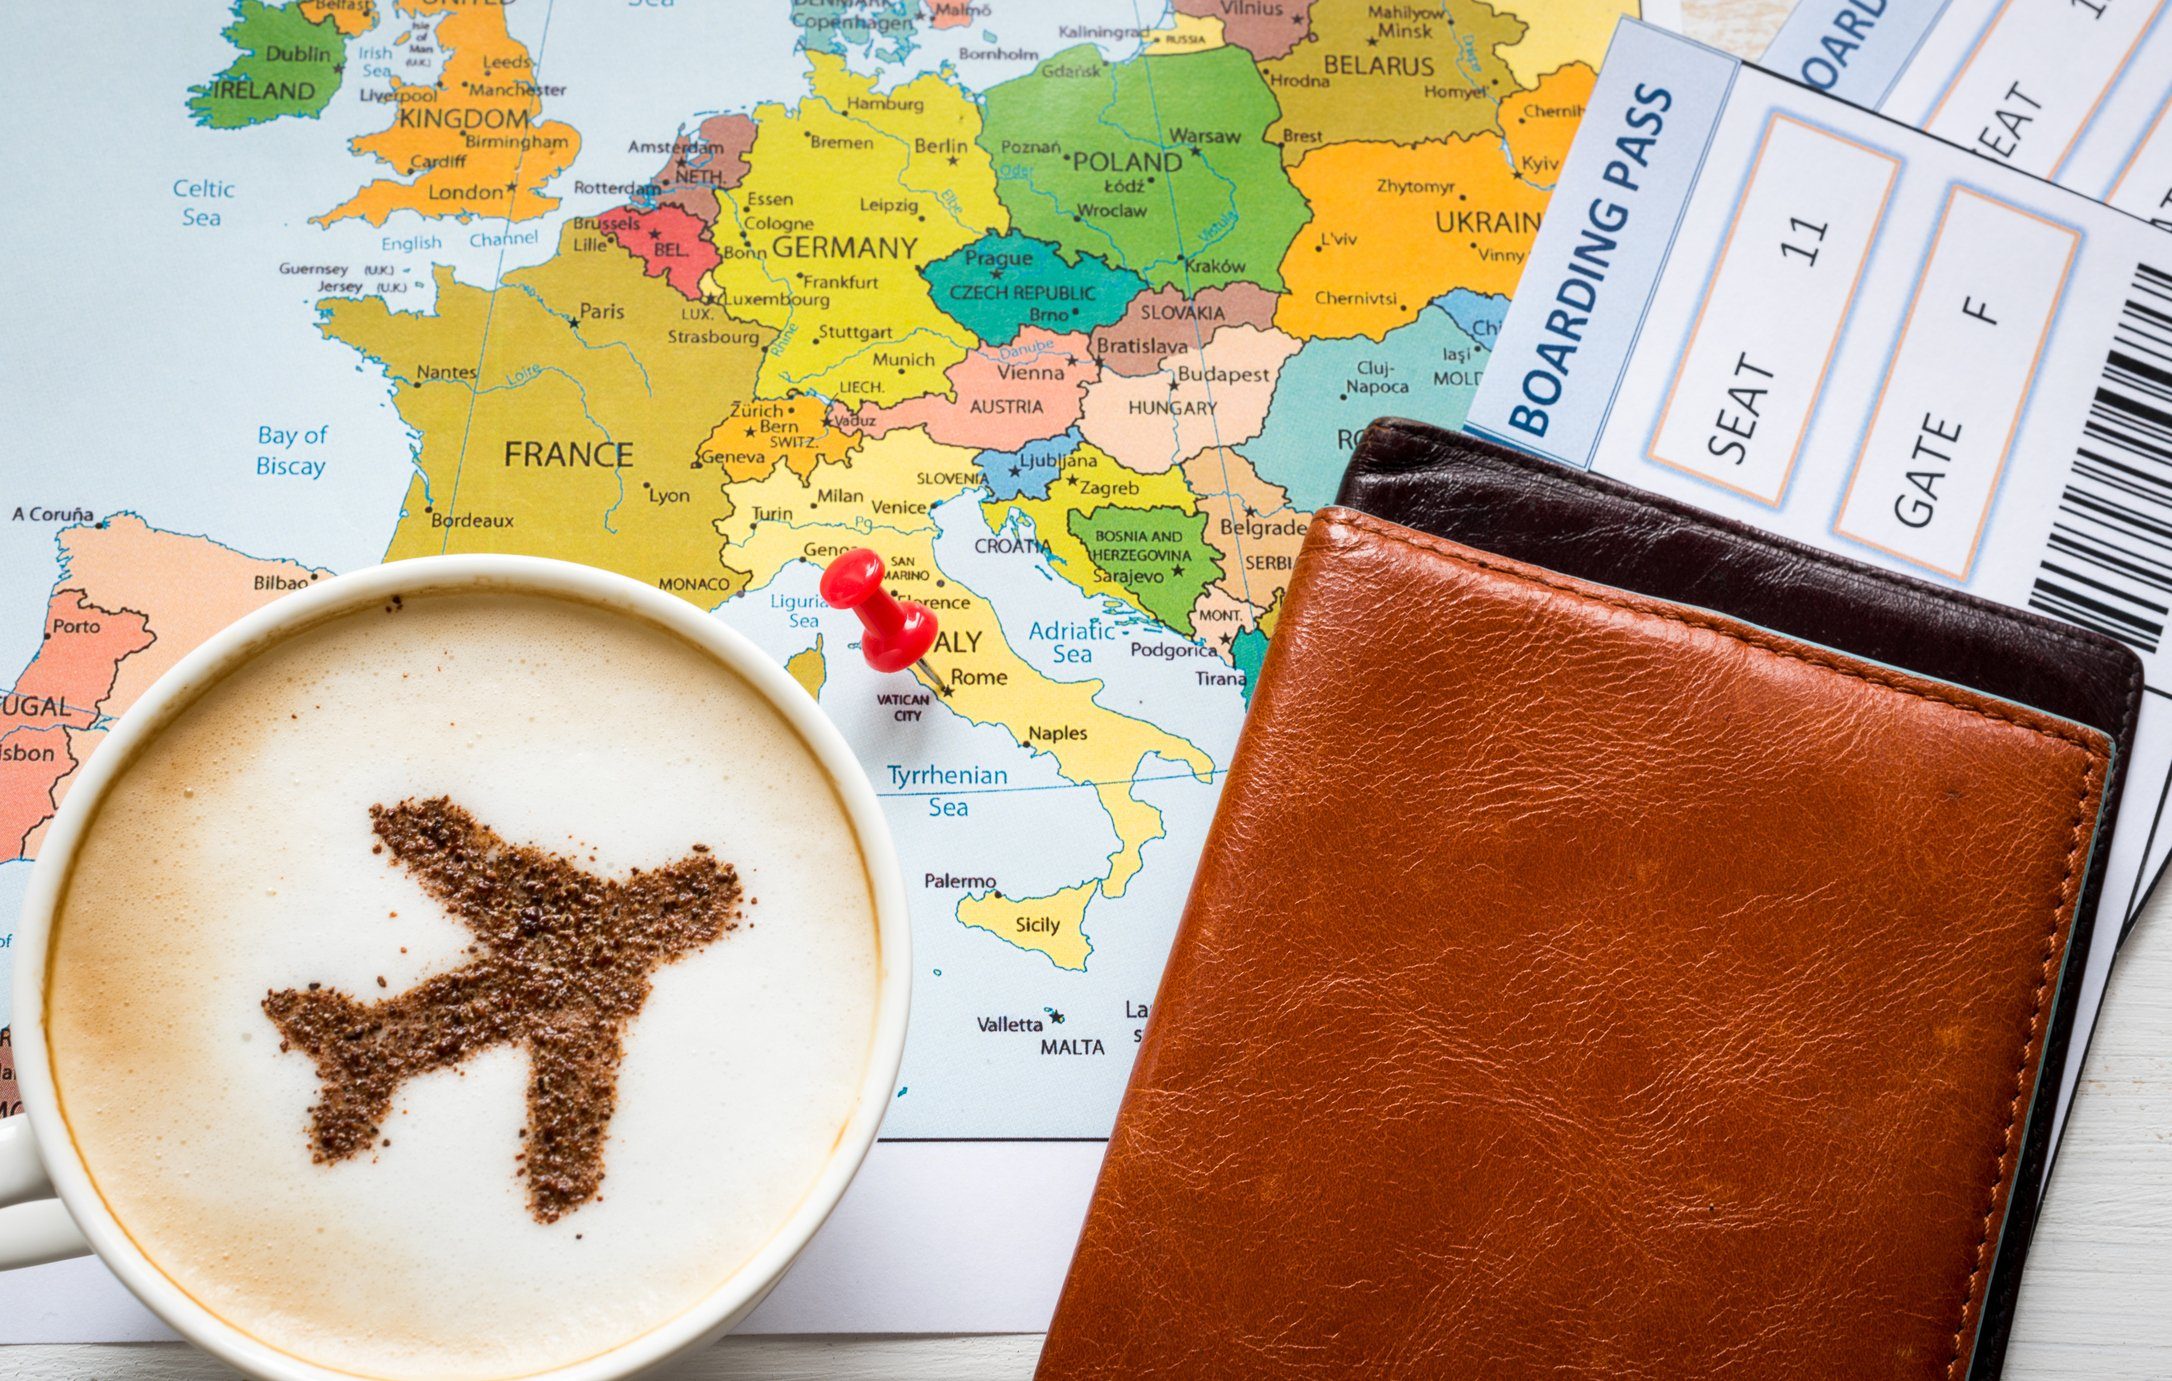 Cup of coffee with plane image in it sitting on top of map and next to a boarding pass.